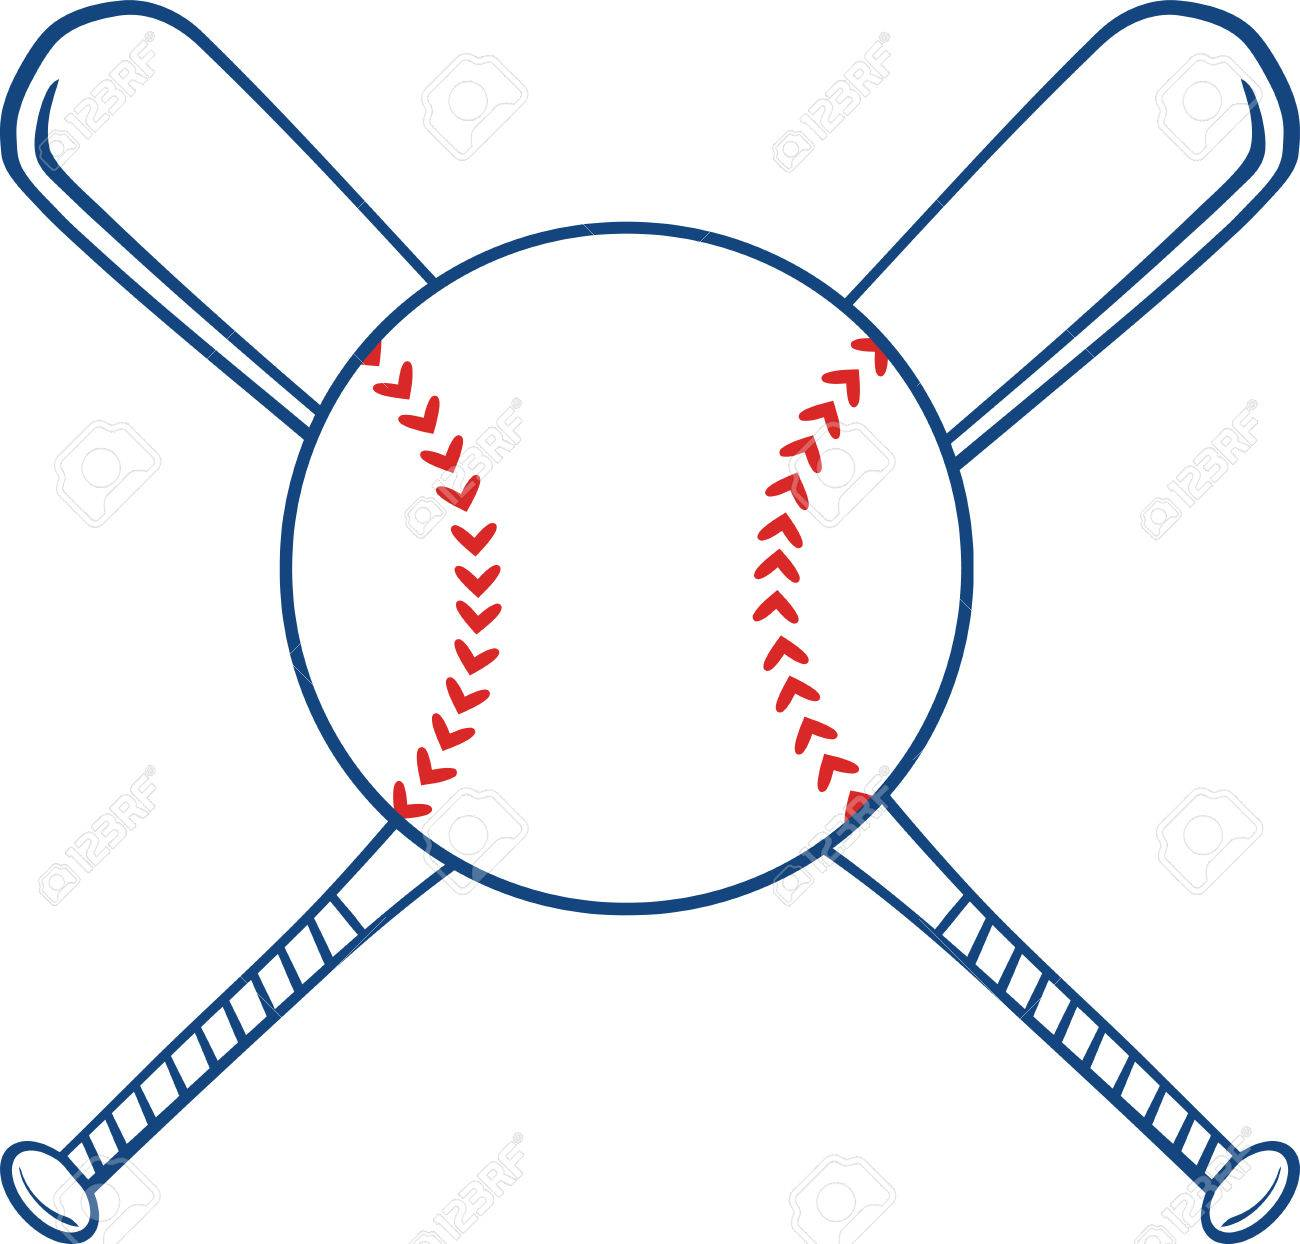 two crossed baseball bats and ball illustration isolated on rh 123rf com crossed baseball bats clipart crossed baseball bats clipart black and white